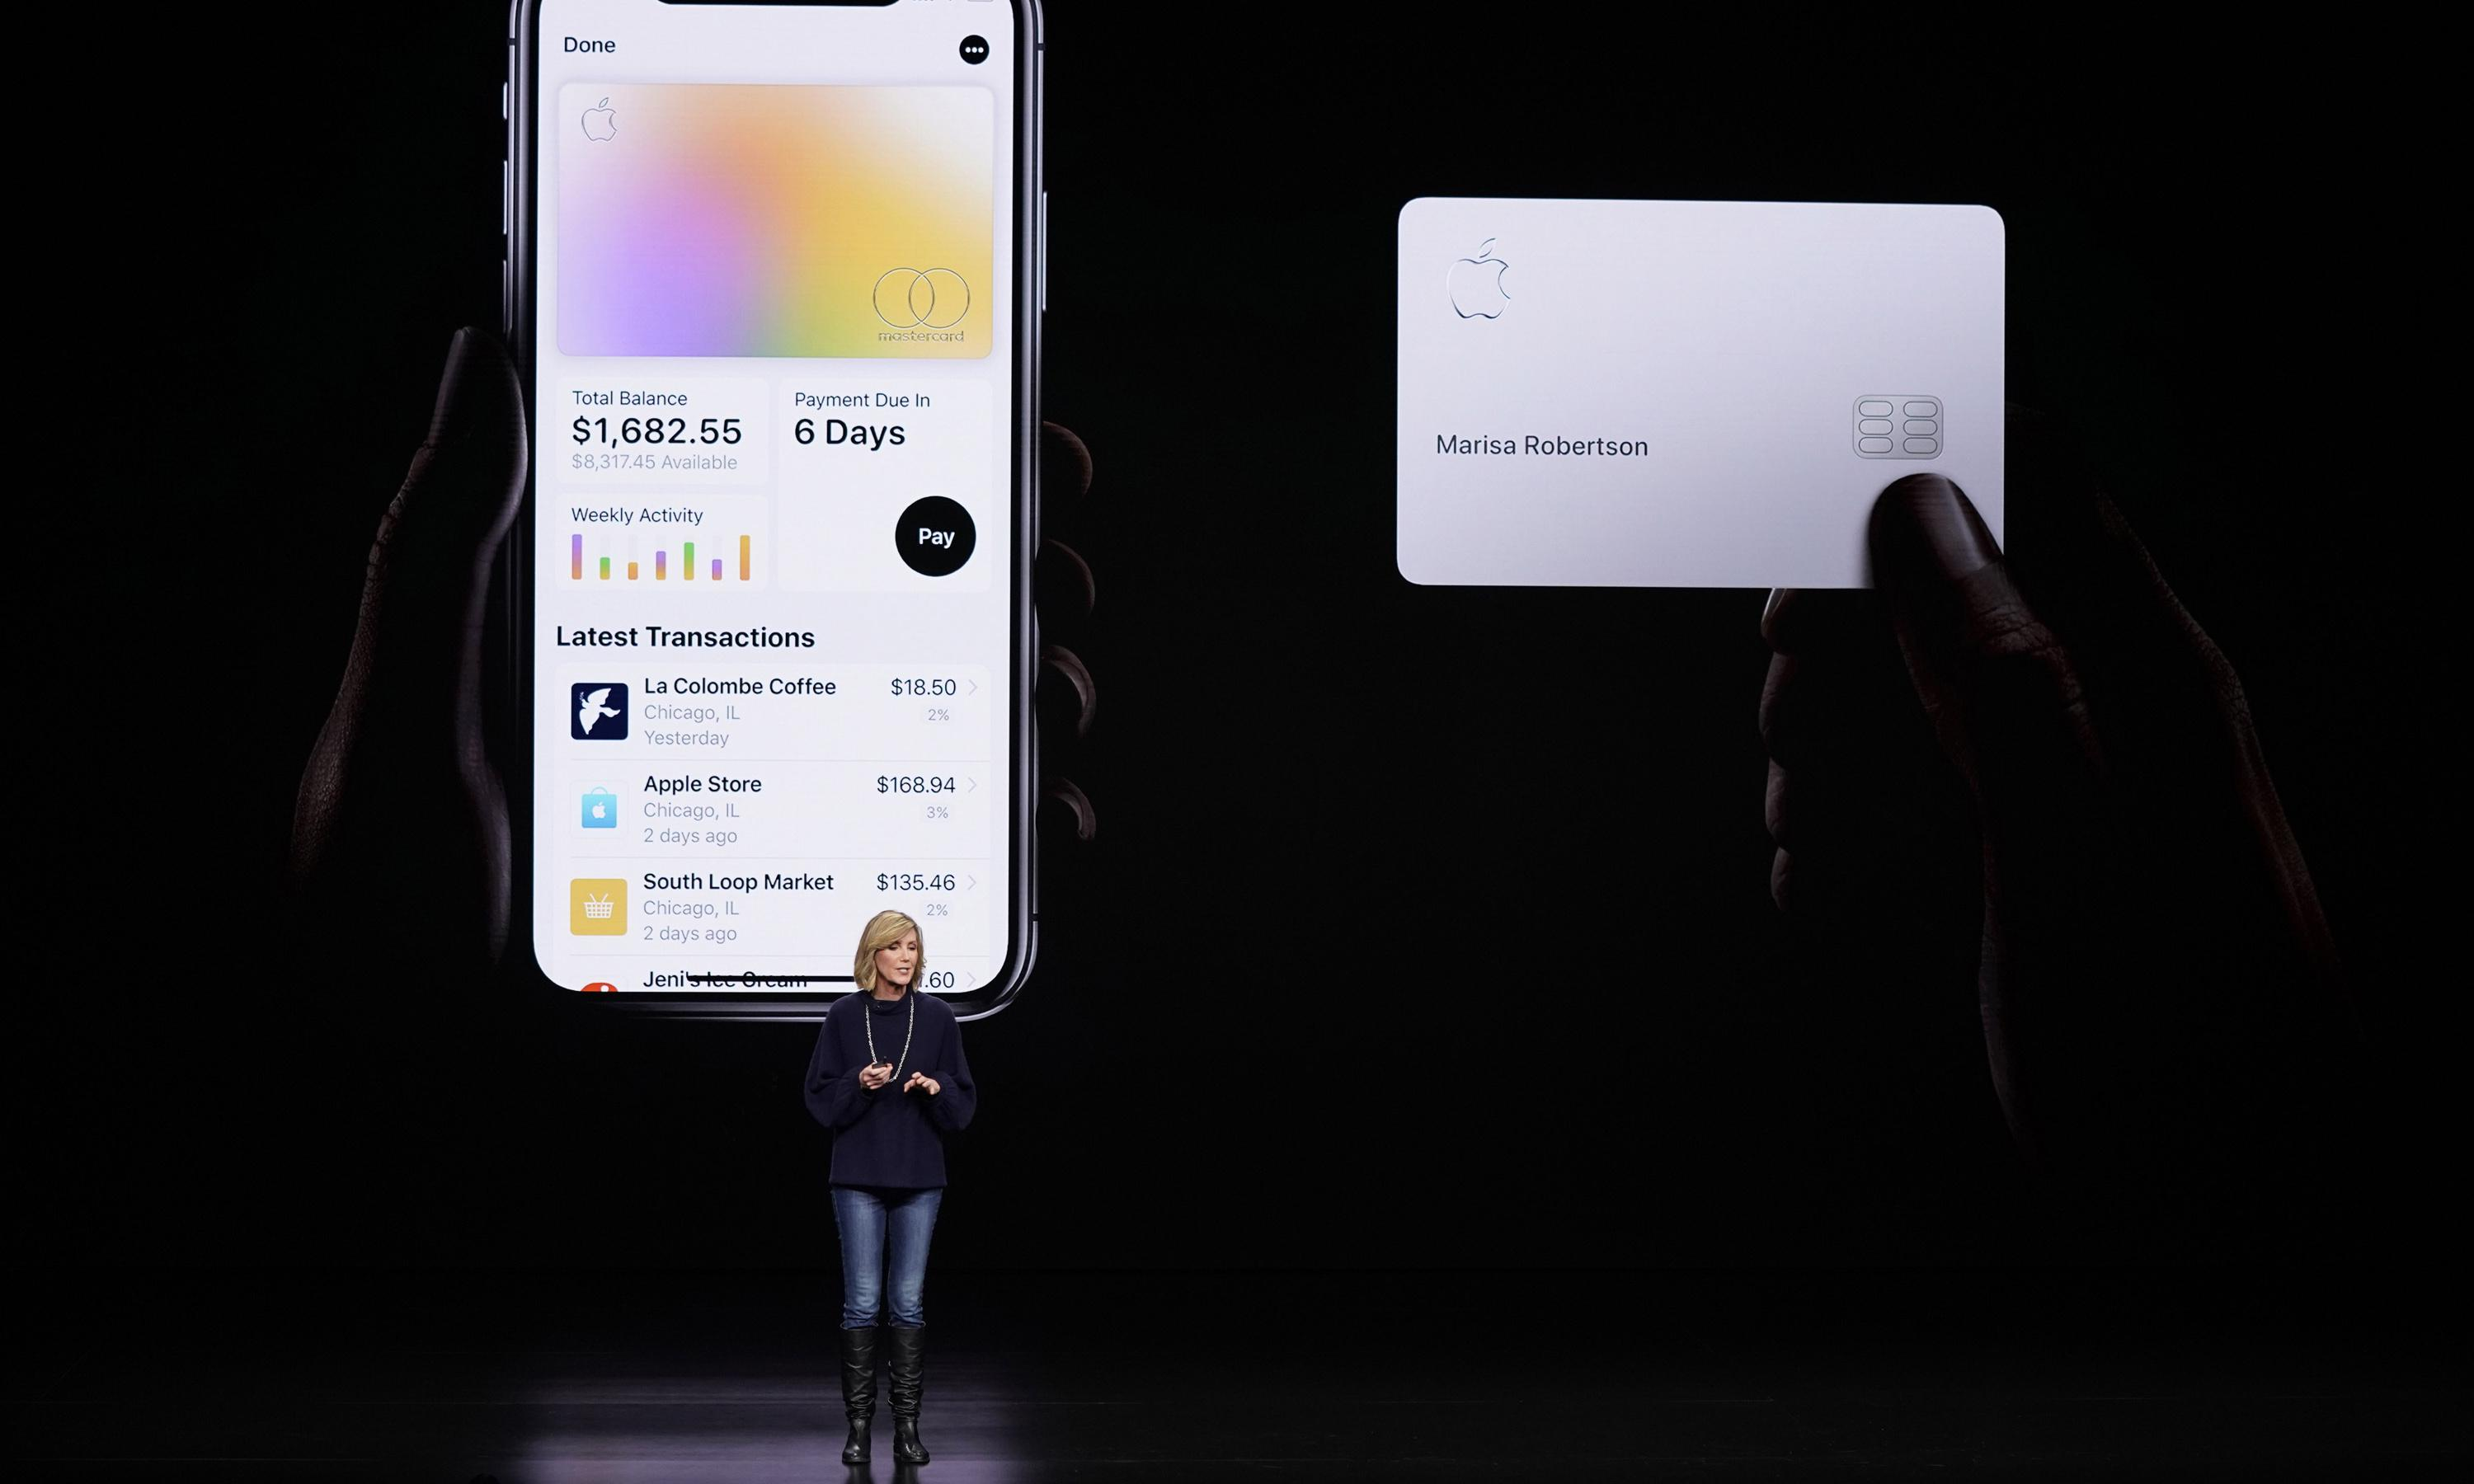 Apple warns new credit card users over risks of it touching wallets and pockets